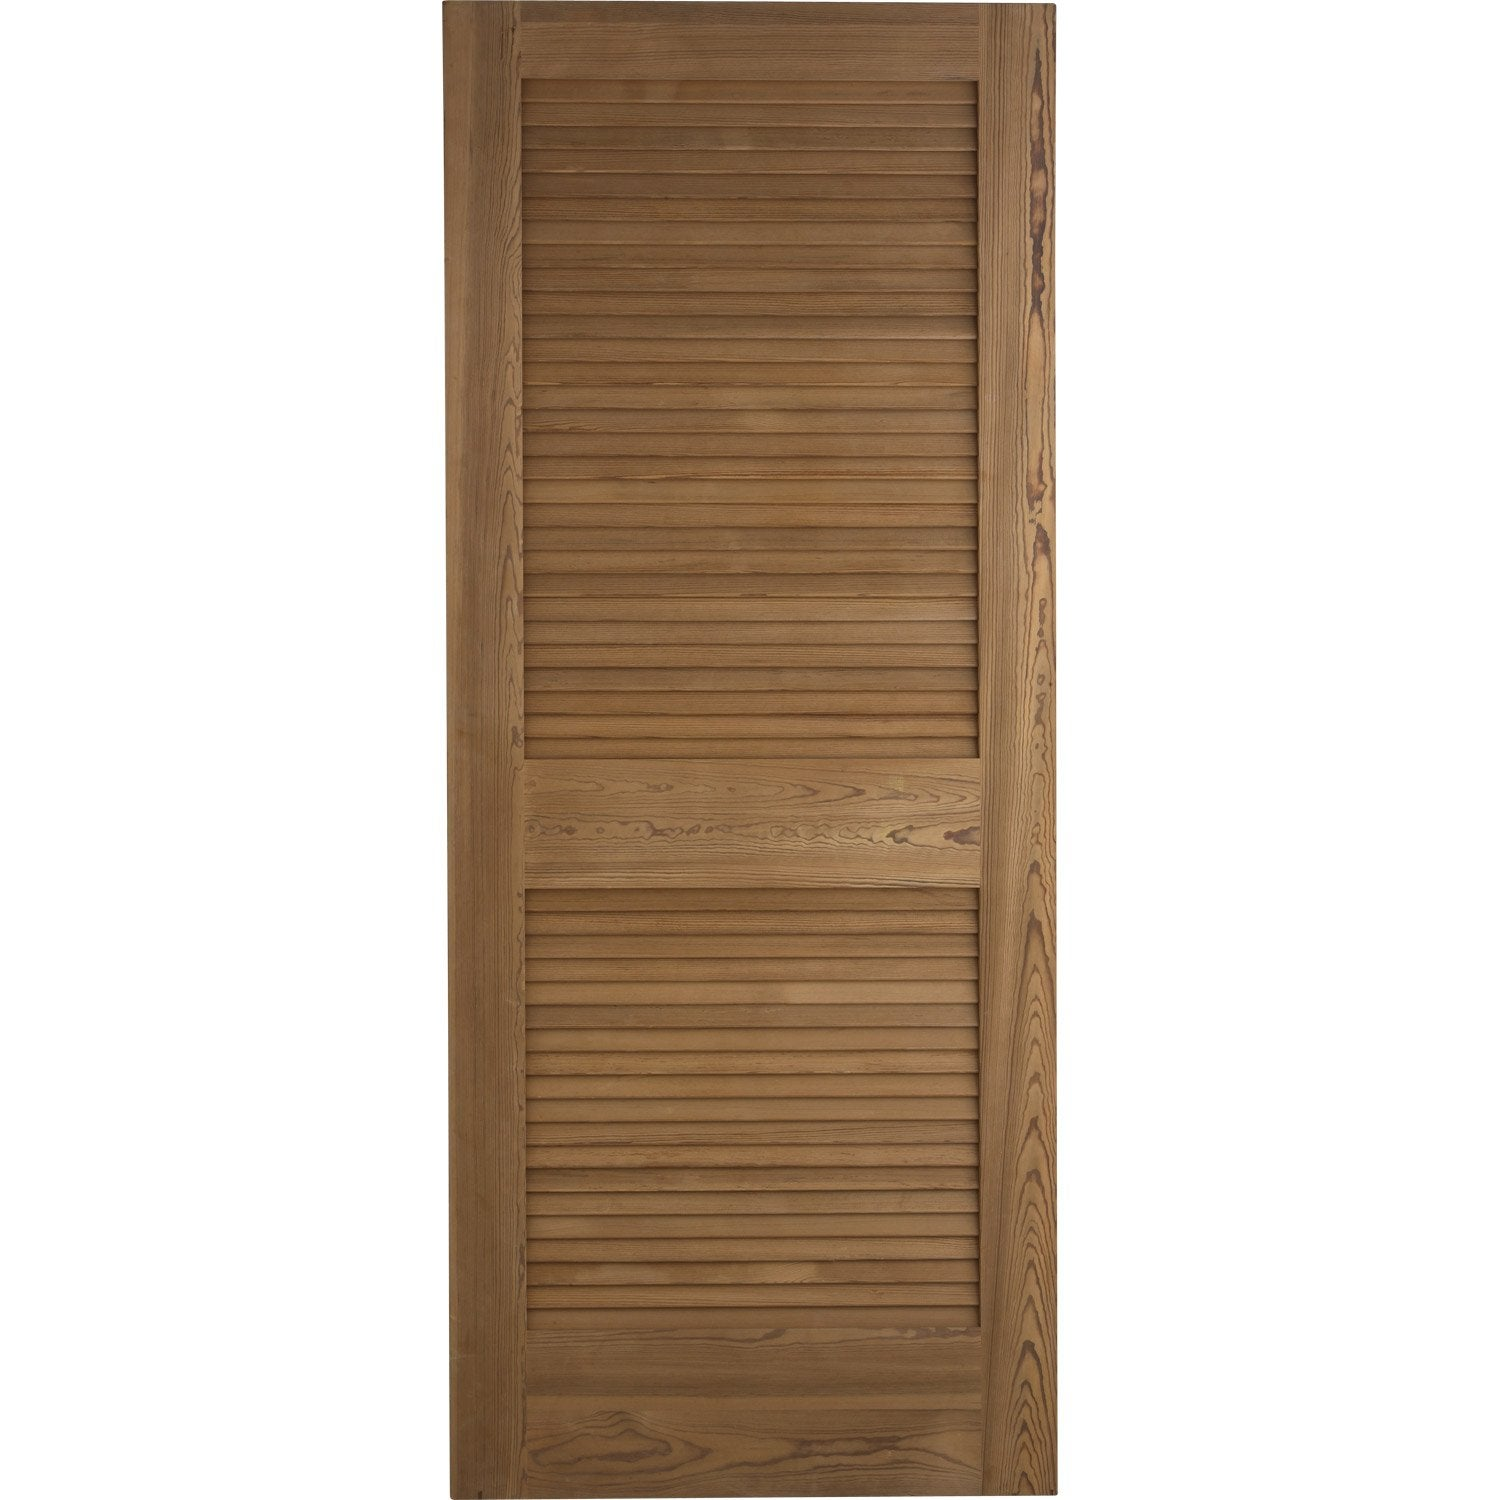 Porte coulissante pin plaqu marron java artens 204 x 73 - Portes coulissantes placard leroy merlin ...